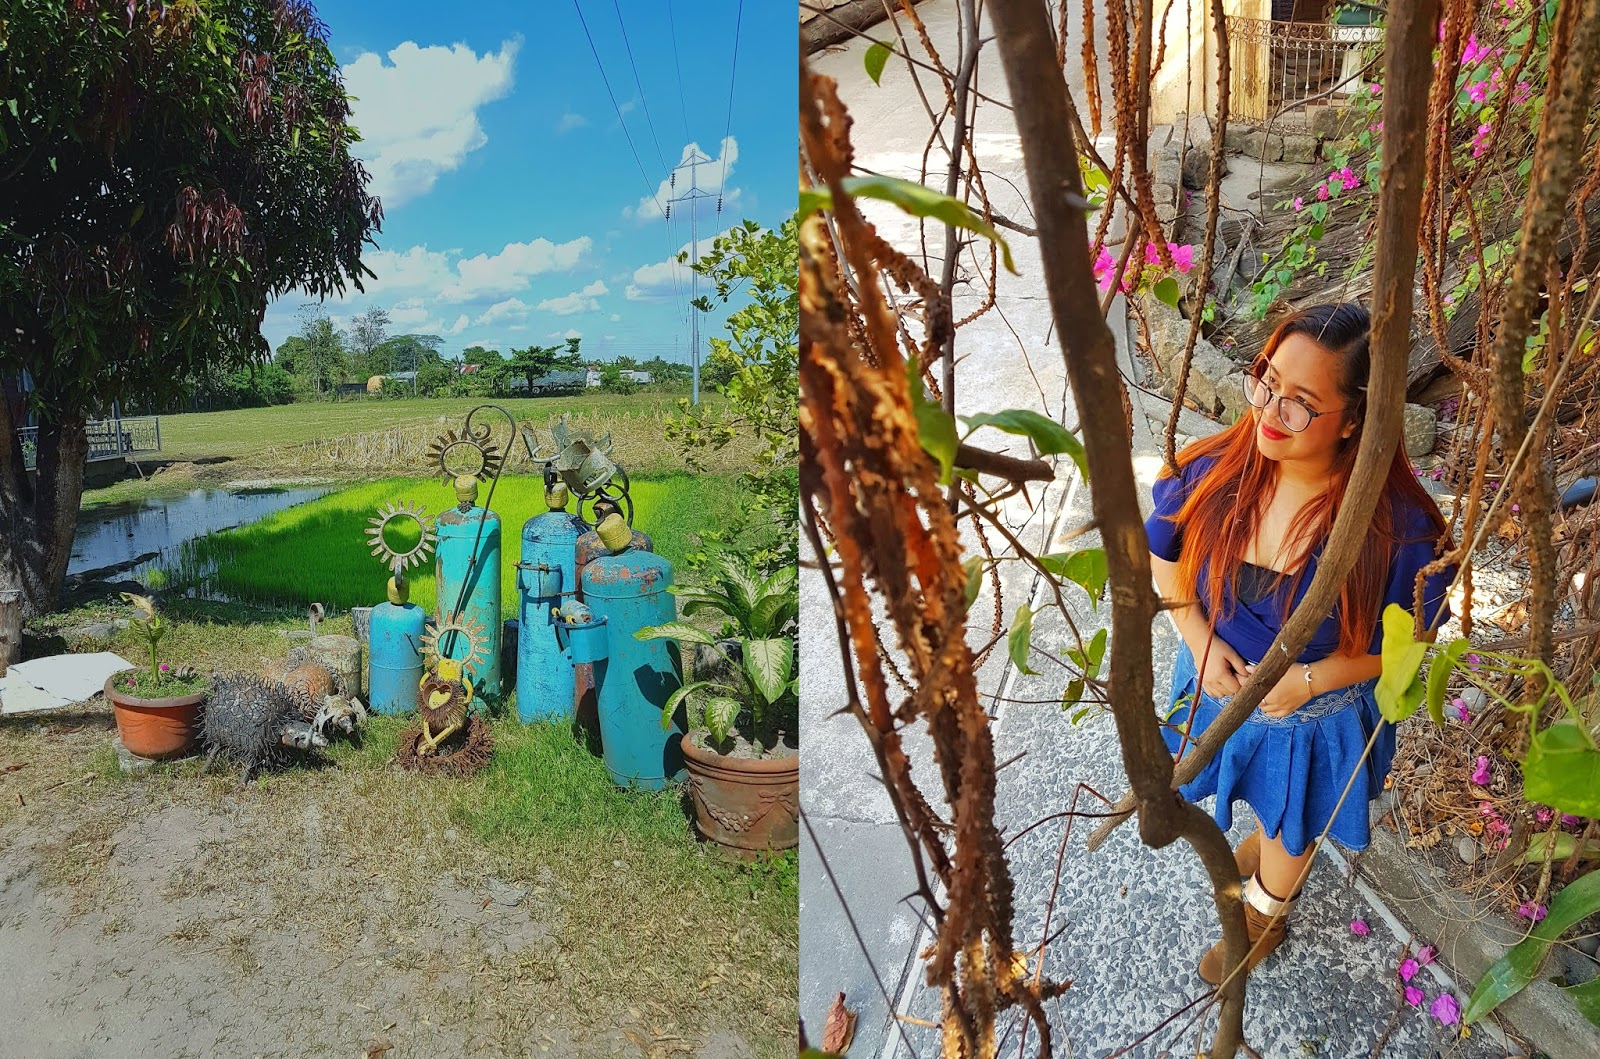 tourist spots in lubao pampanga